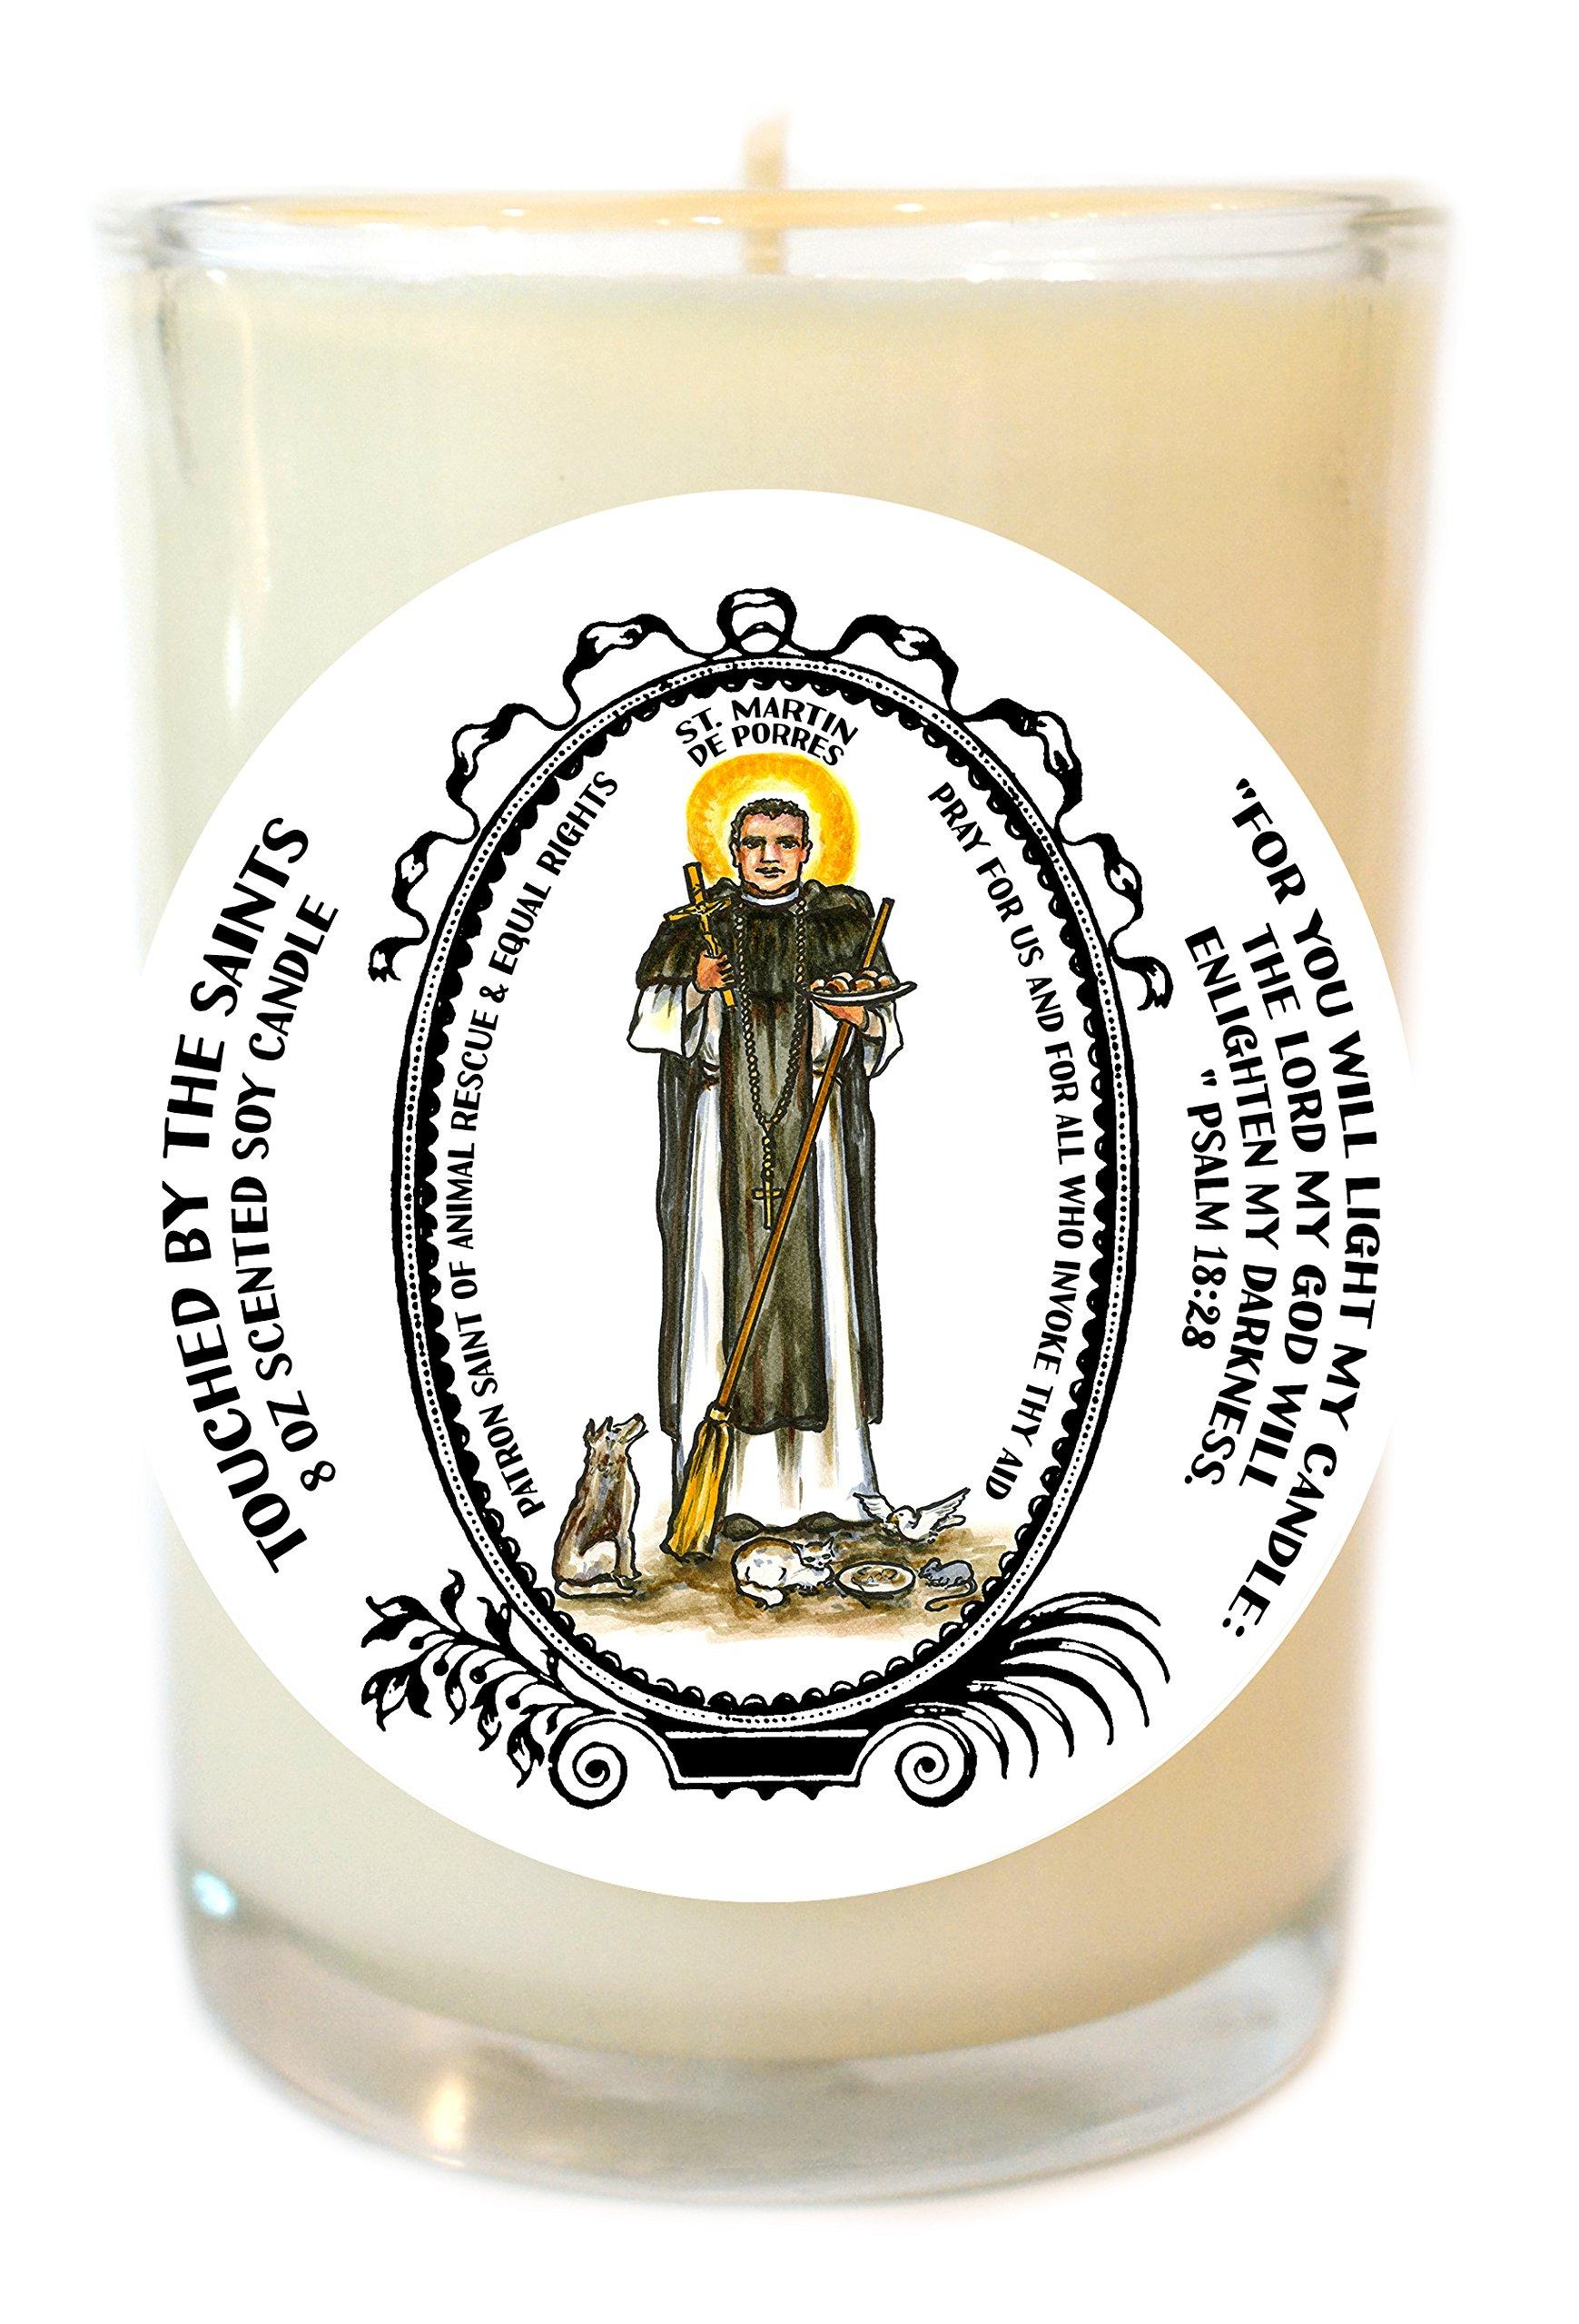 St Martin de Porres Equal Rights, Animal Rescue 8 Oz Scented Soy Glass Candle